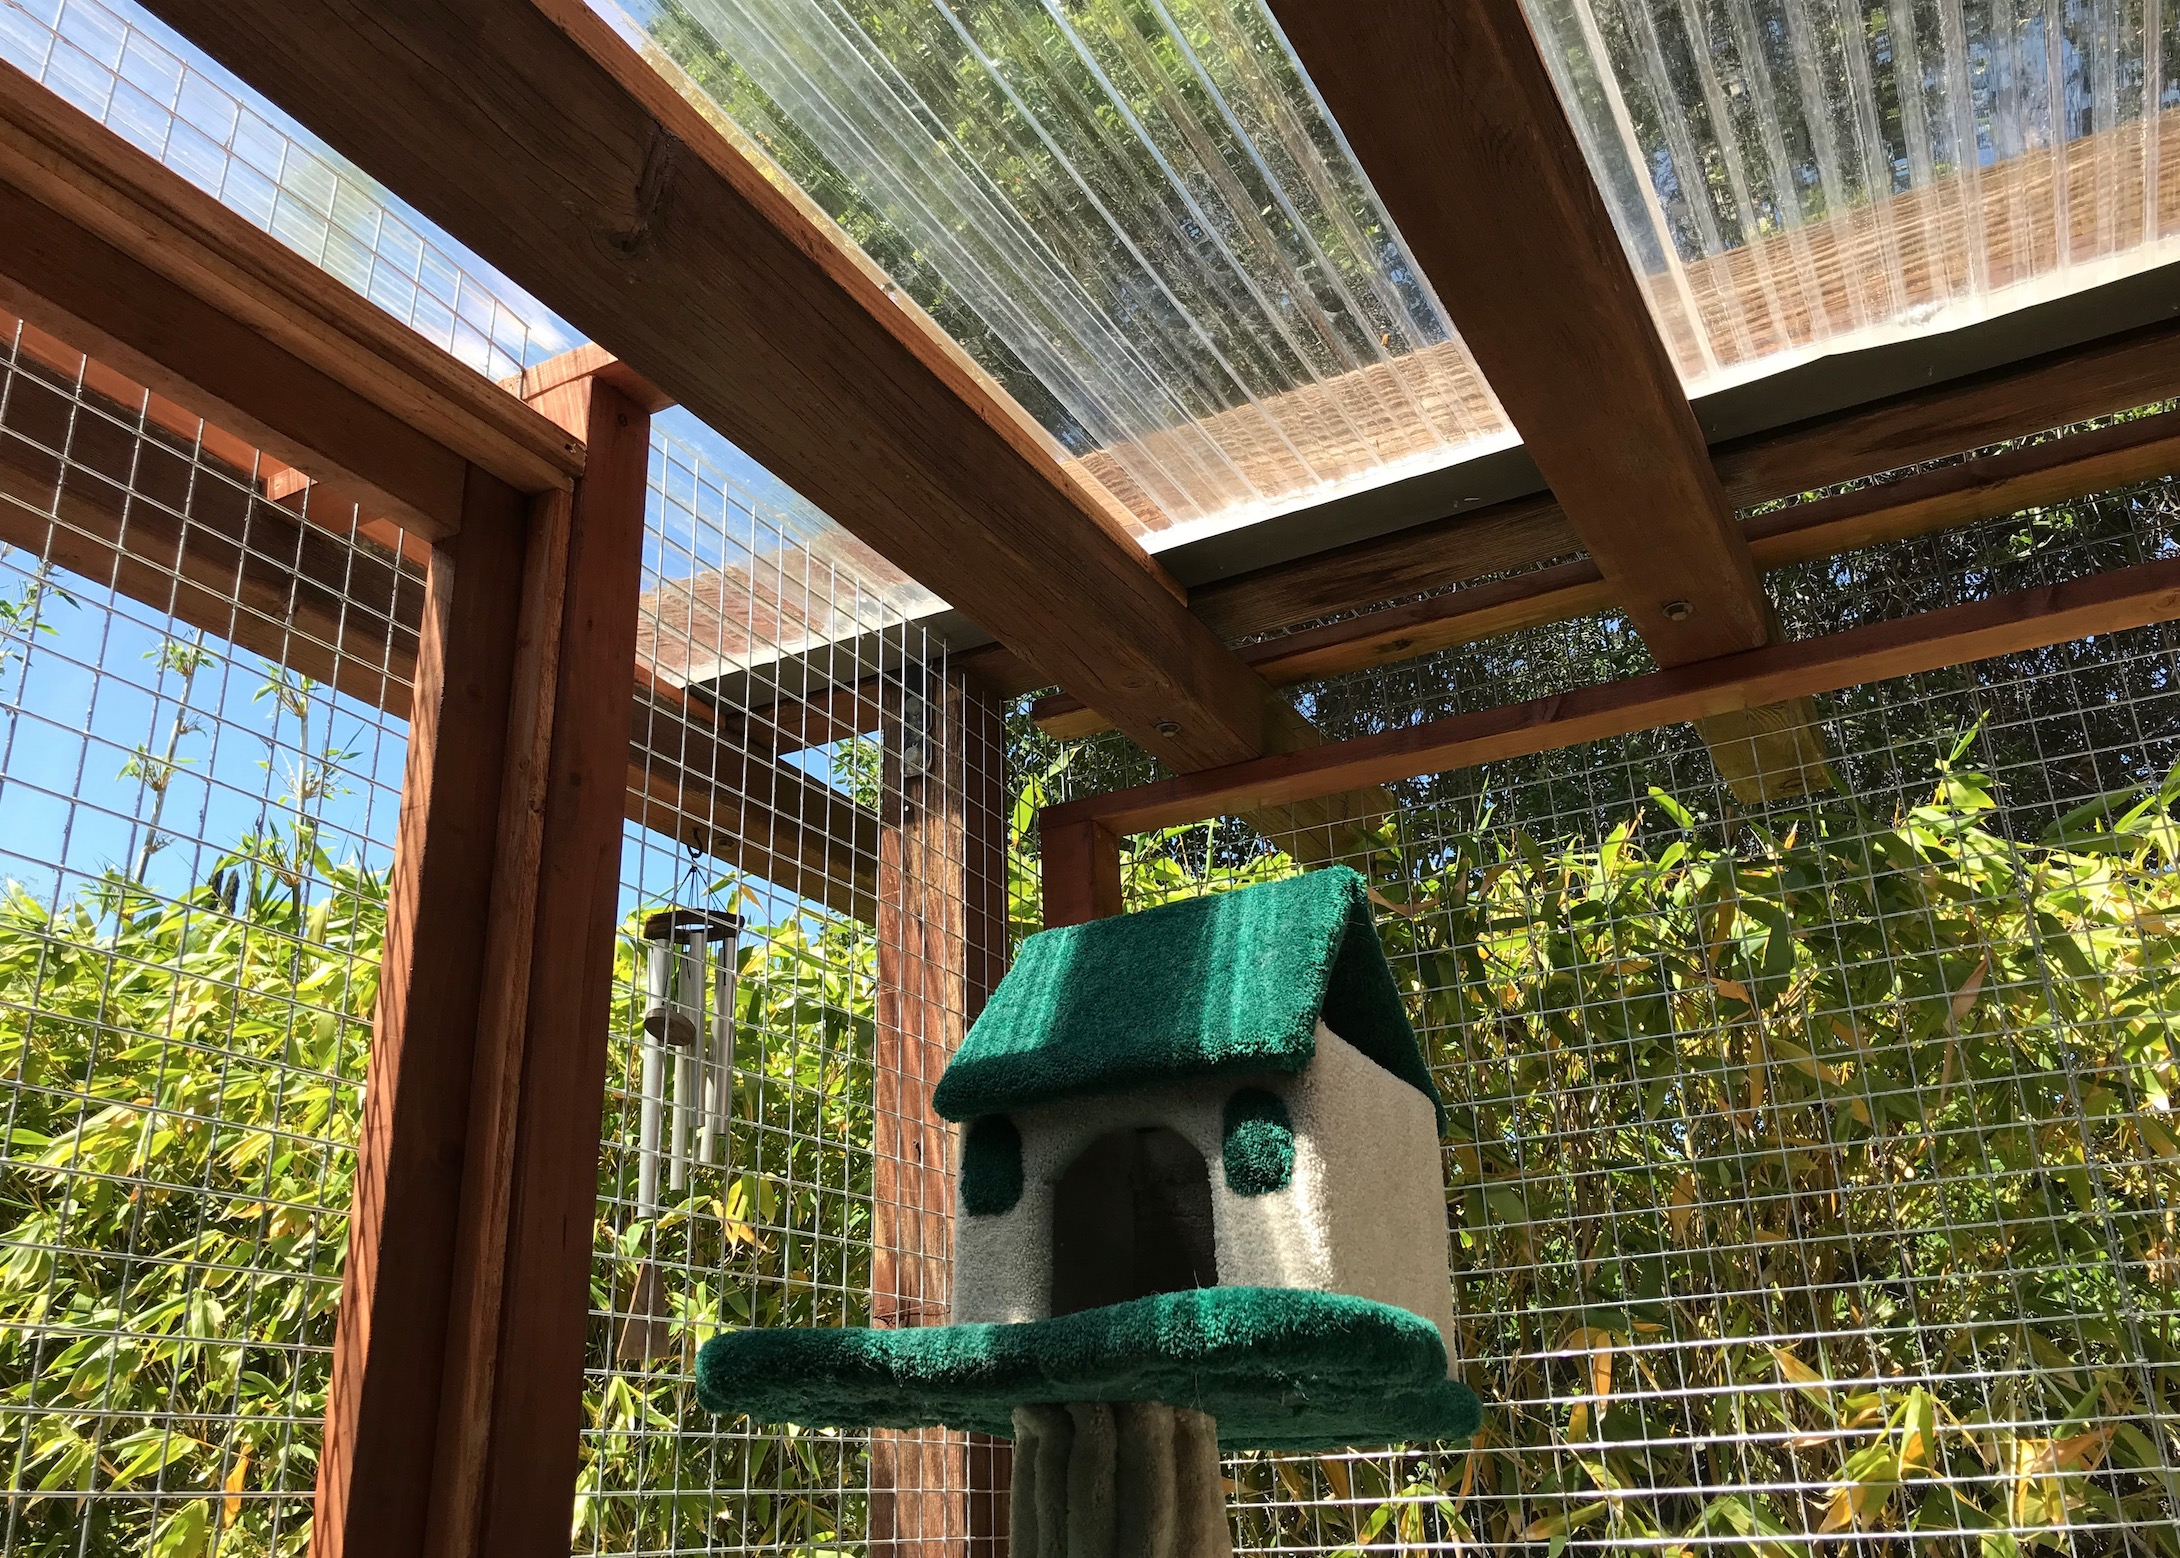 Encino Catio After Roof Shot